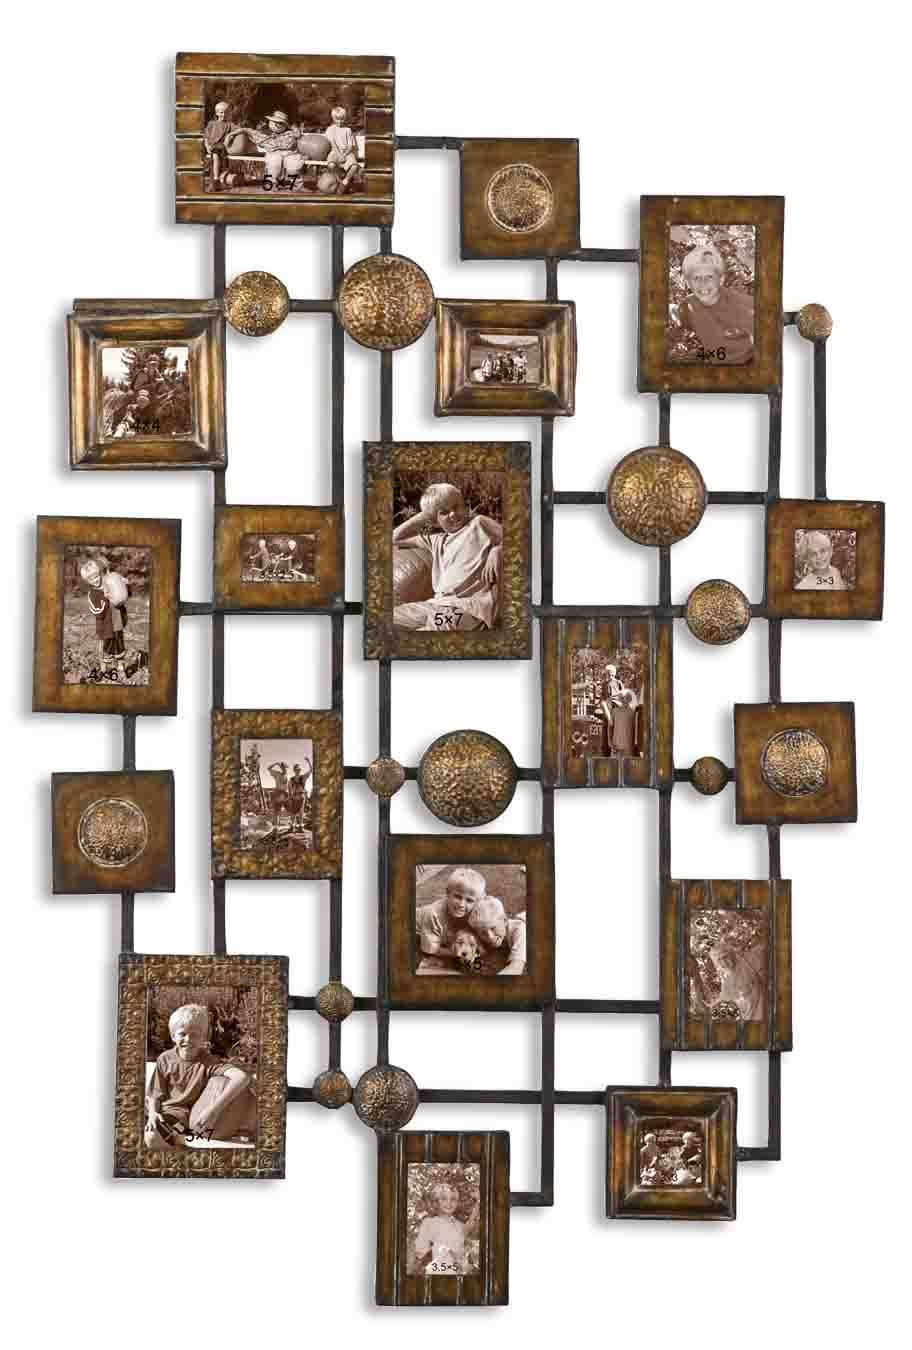 Uttermost Natane Decorative Metal Wall Art 13465 throughout Most Recently Released Decorative Metal Wall Art